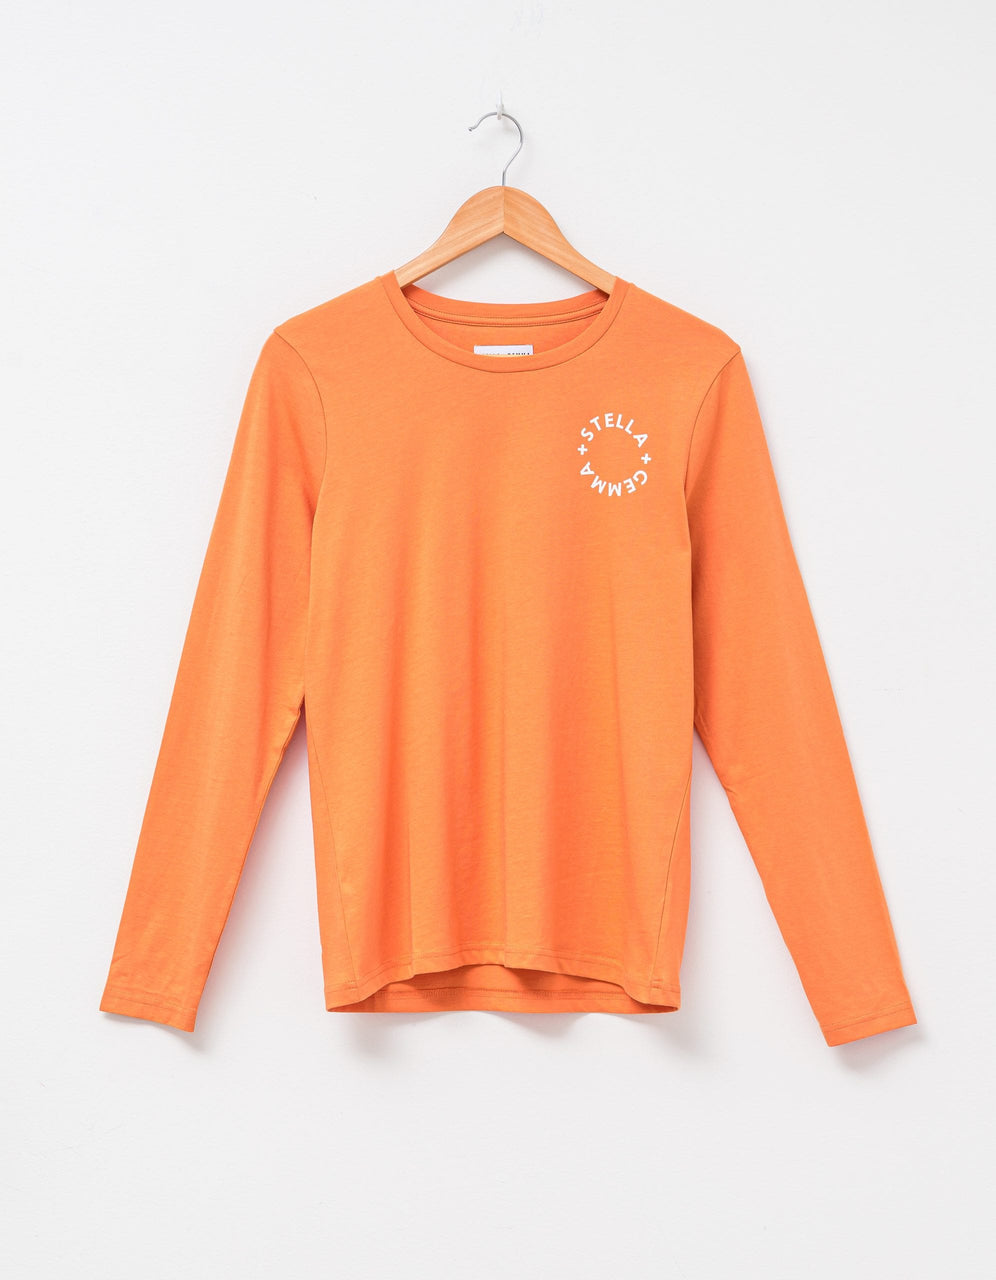 Round Neck Long Sleeve Top - Amber with S+G Logo